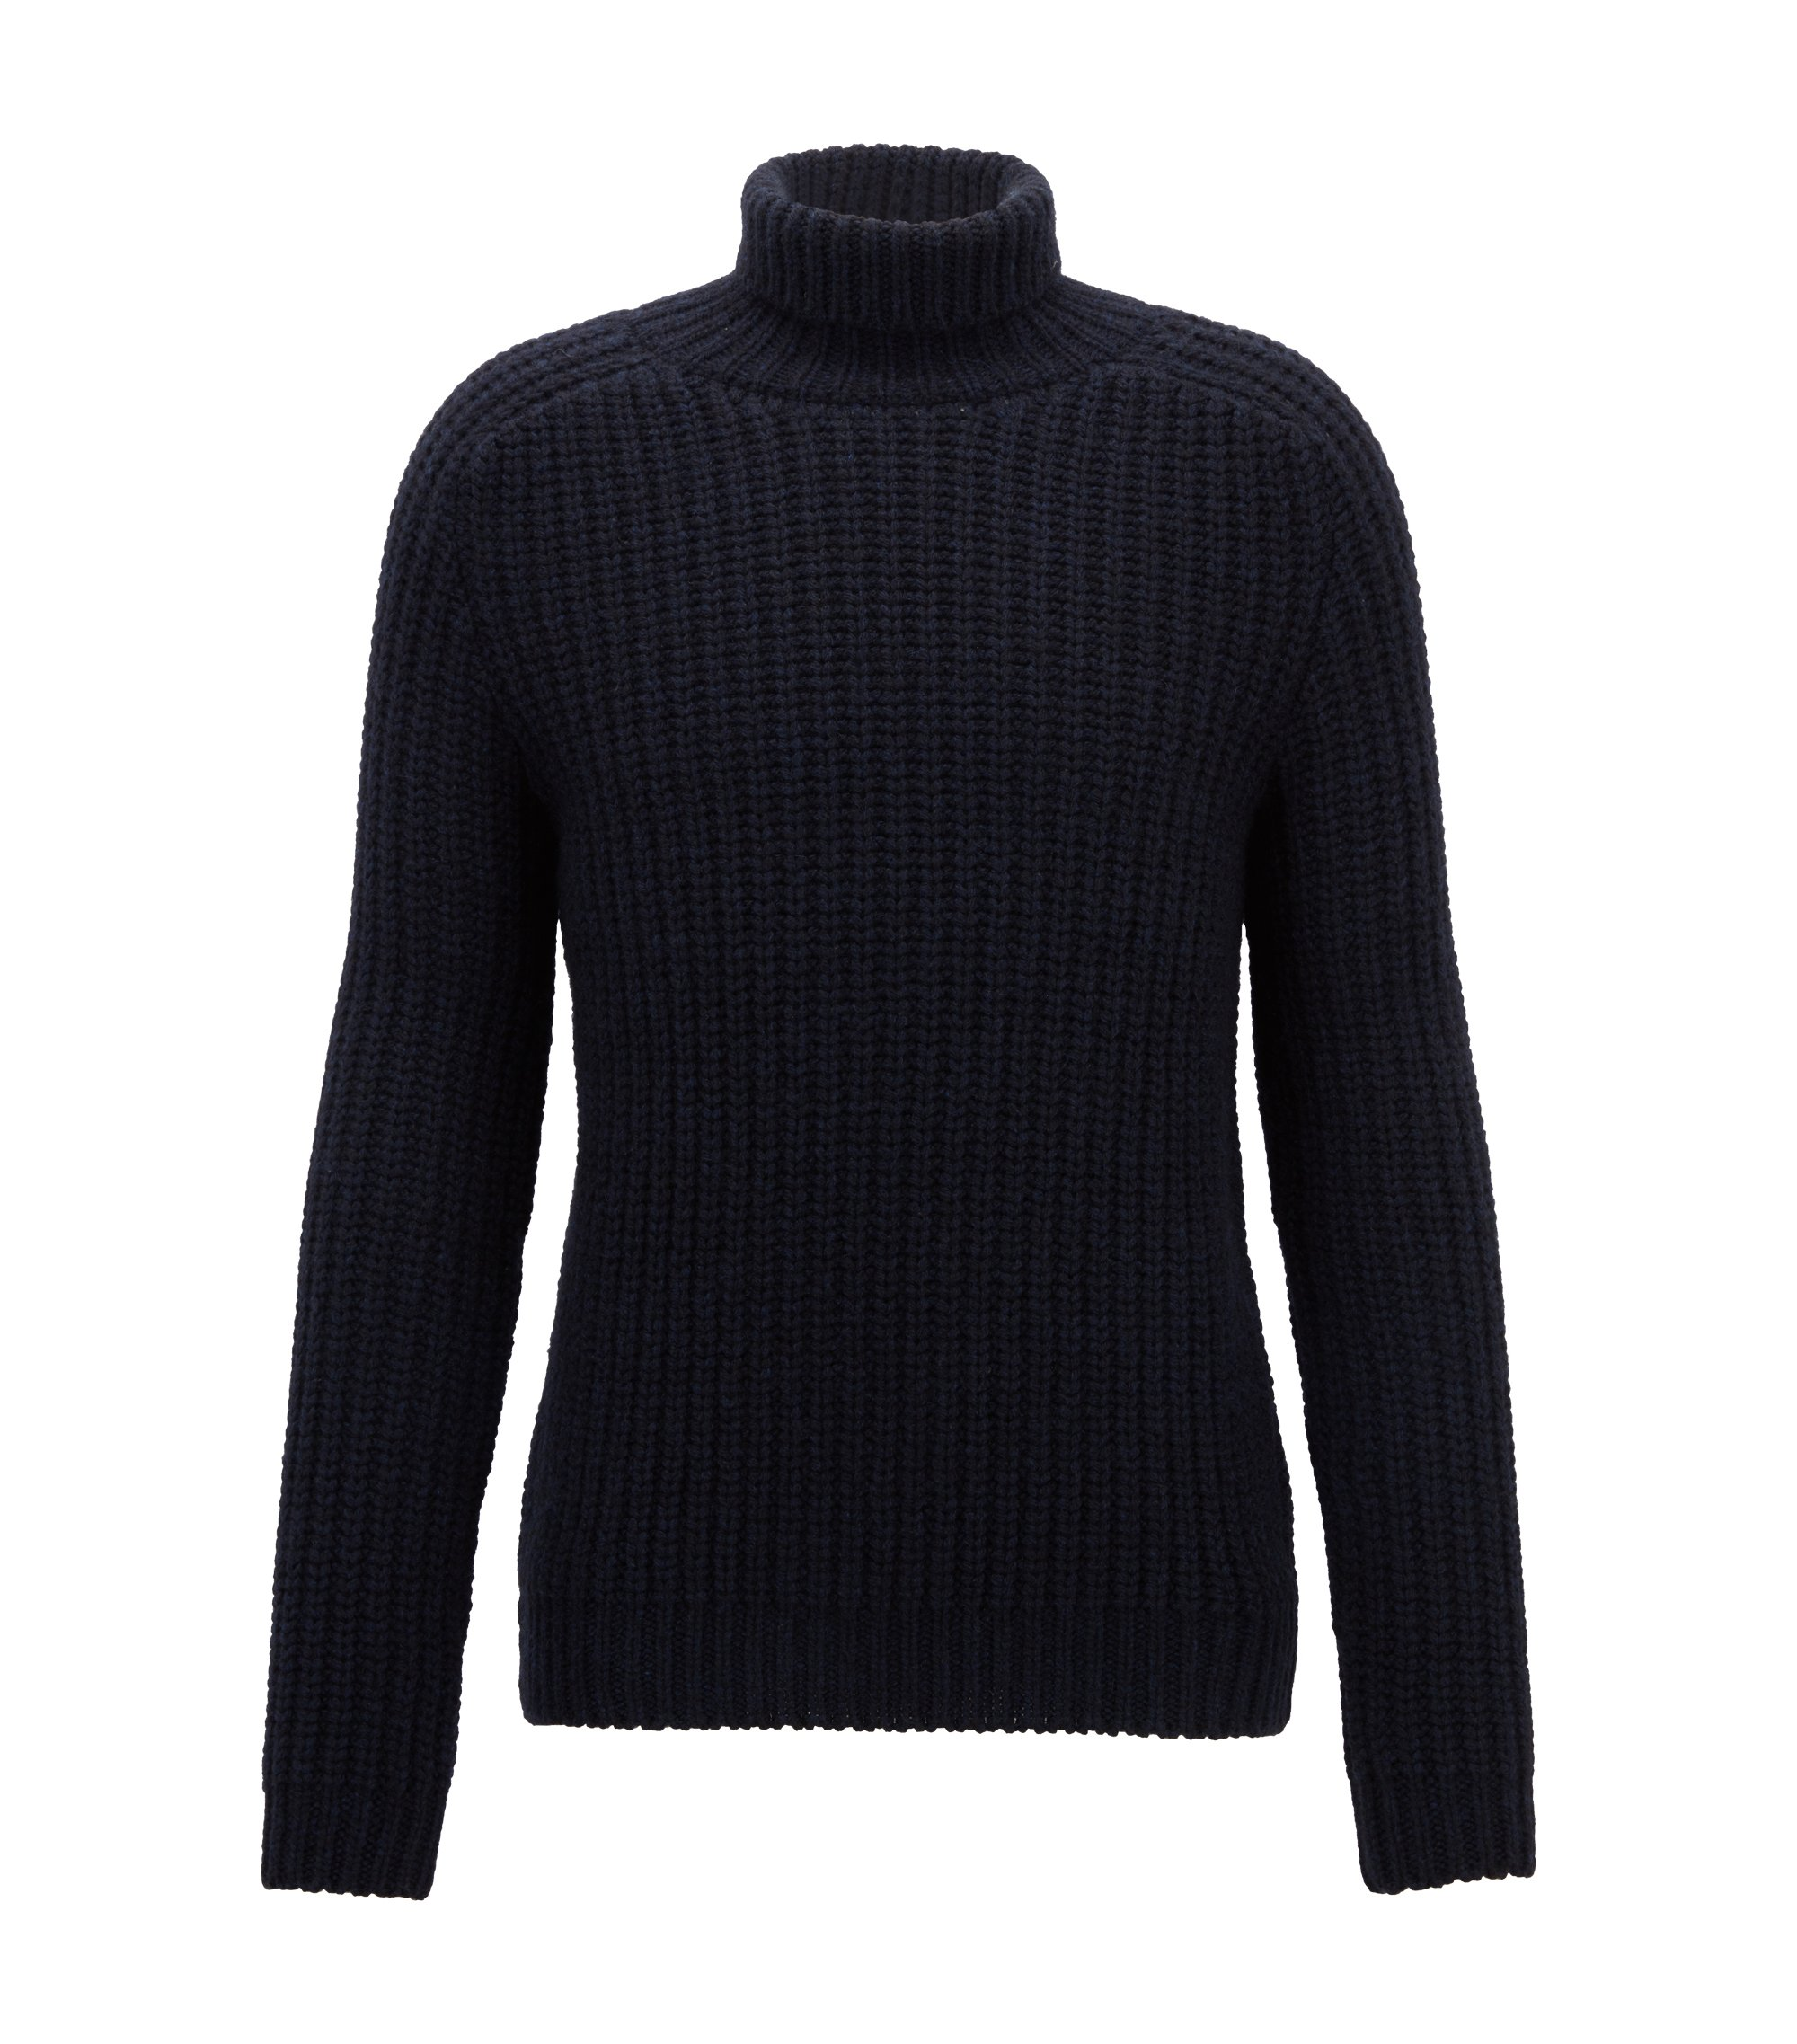 Fashion Show Capsule turtleneck sweater in cashmere, Dark Blue